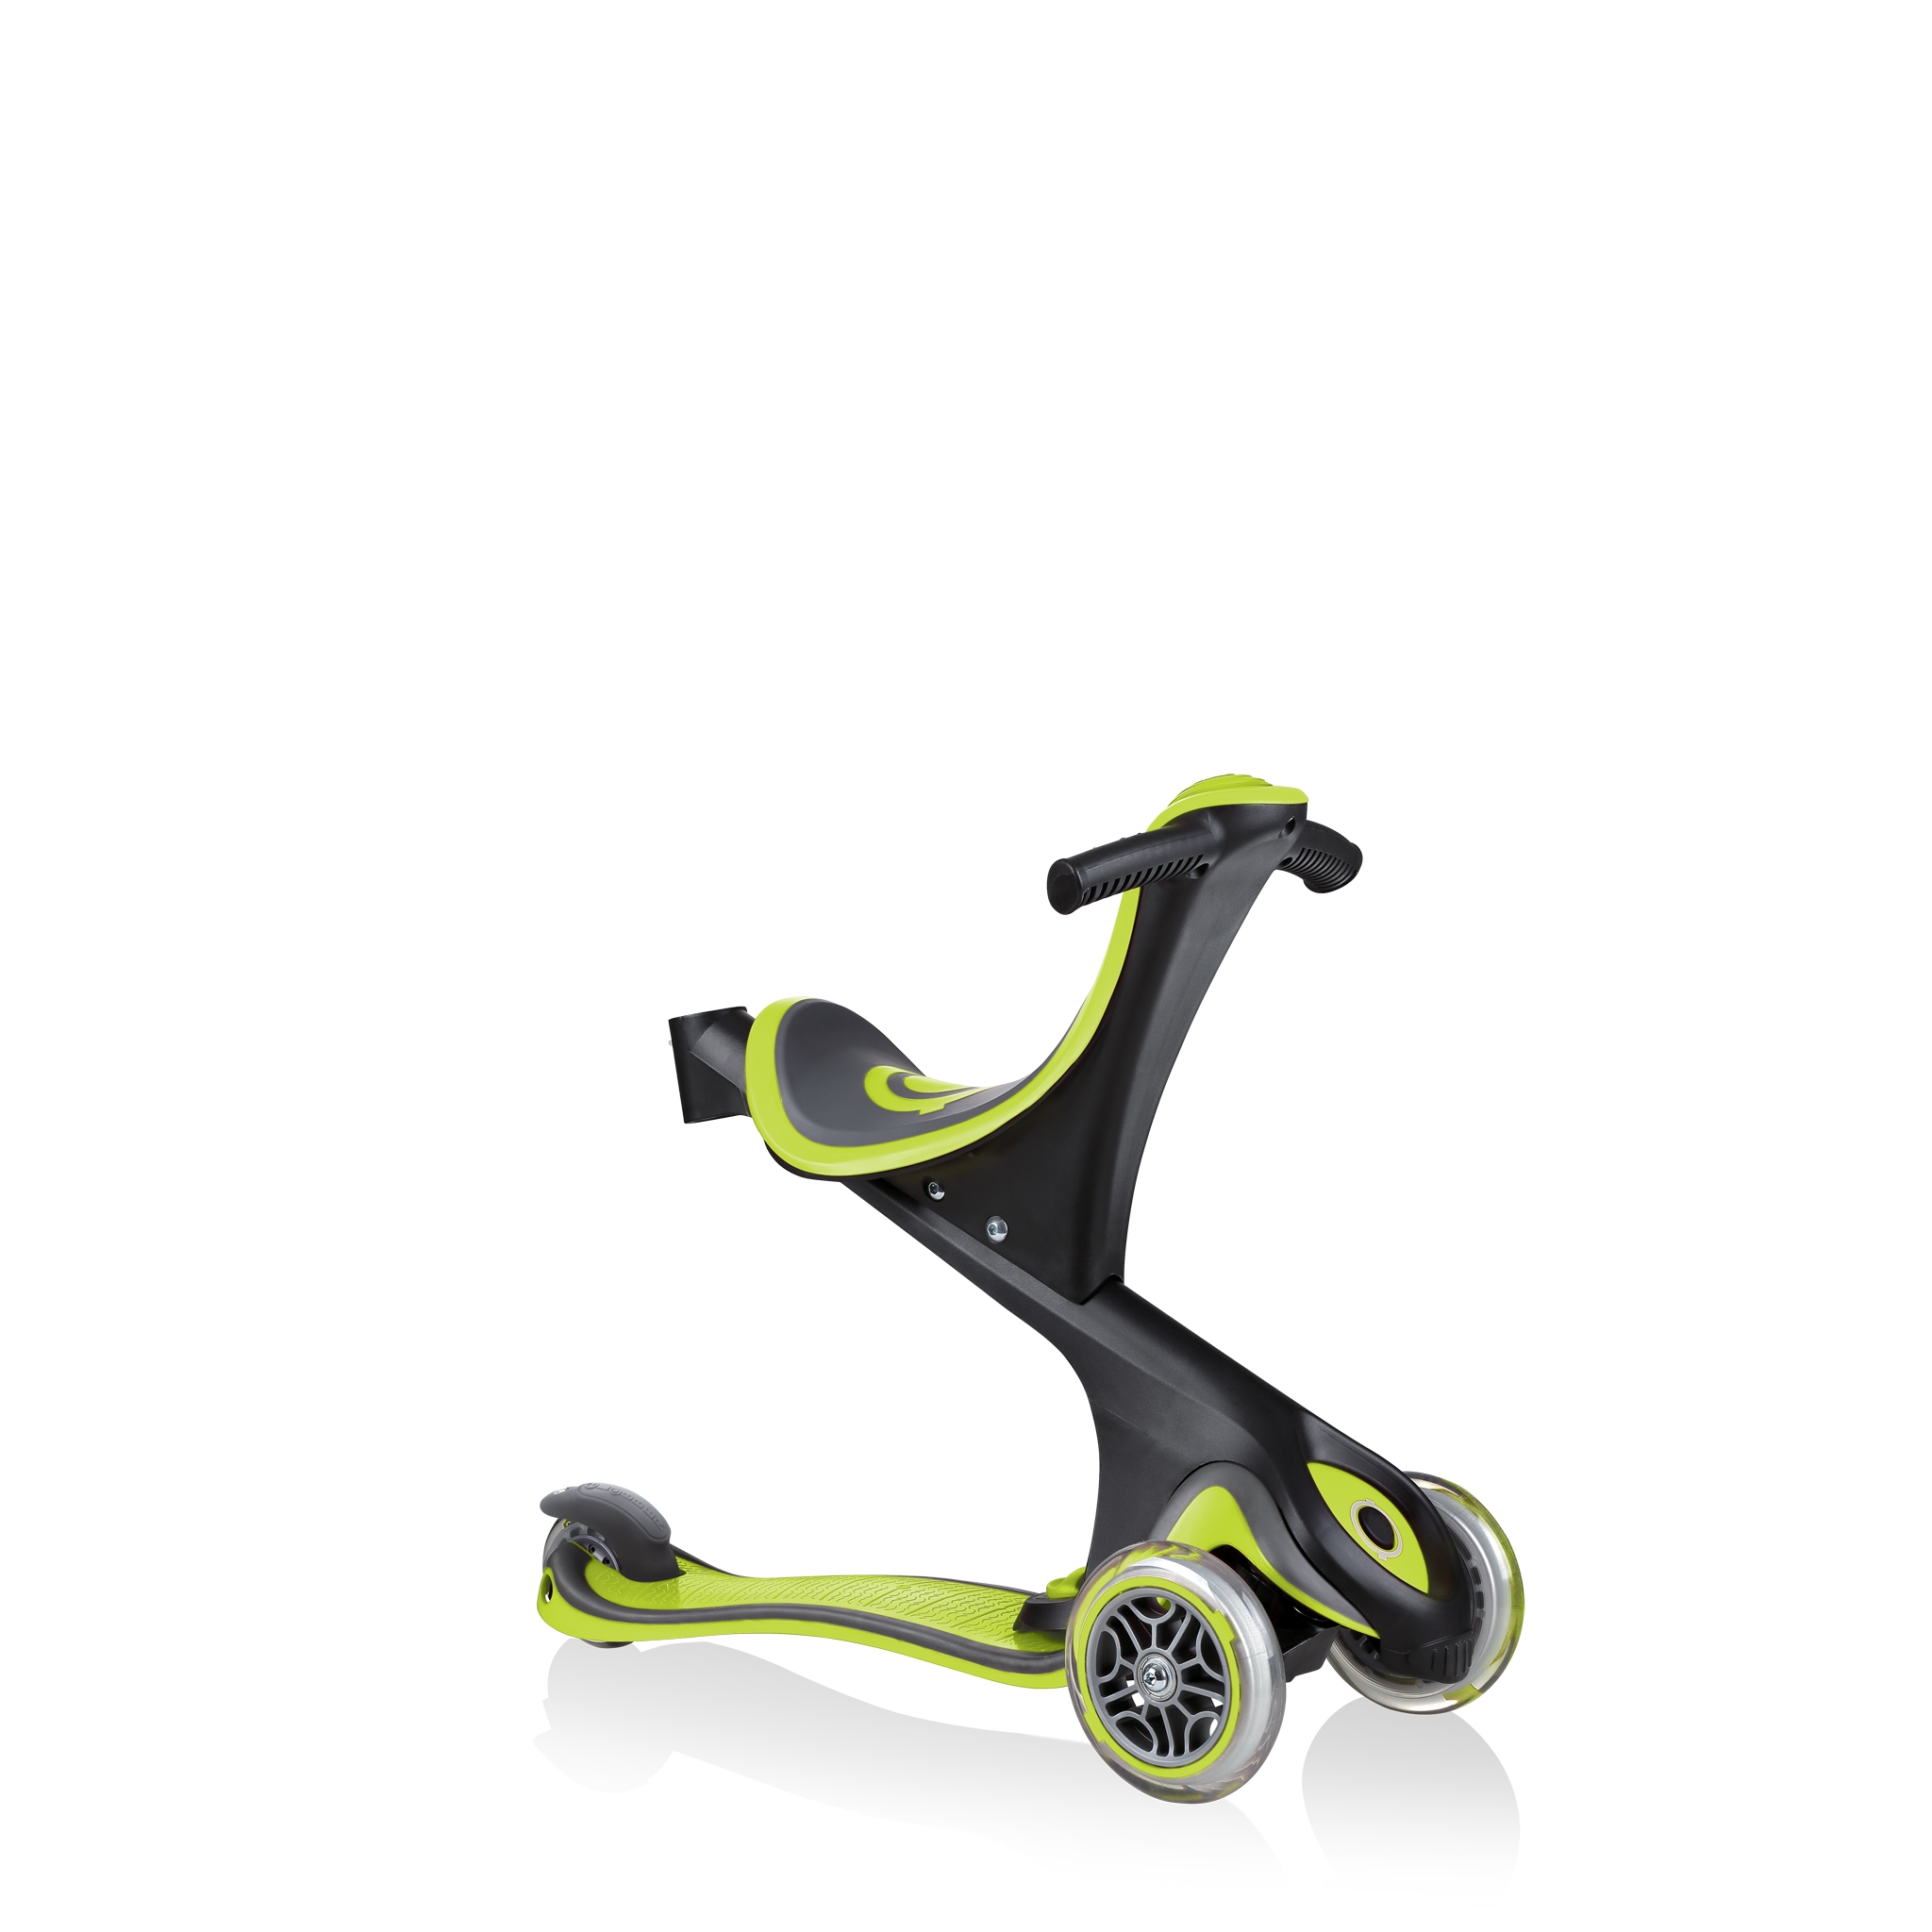 GO-UP-COMFORT-scooter-with-seat-walking-bike-lime-green 2